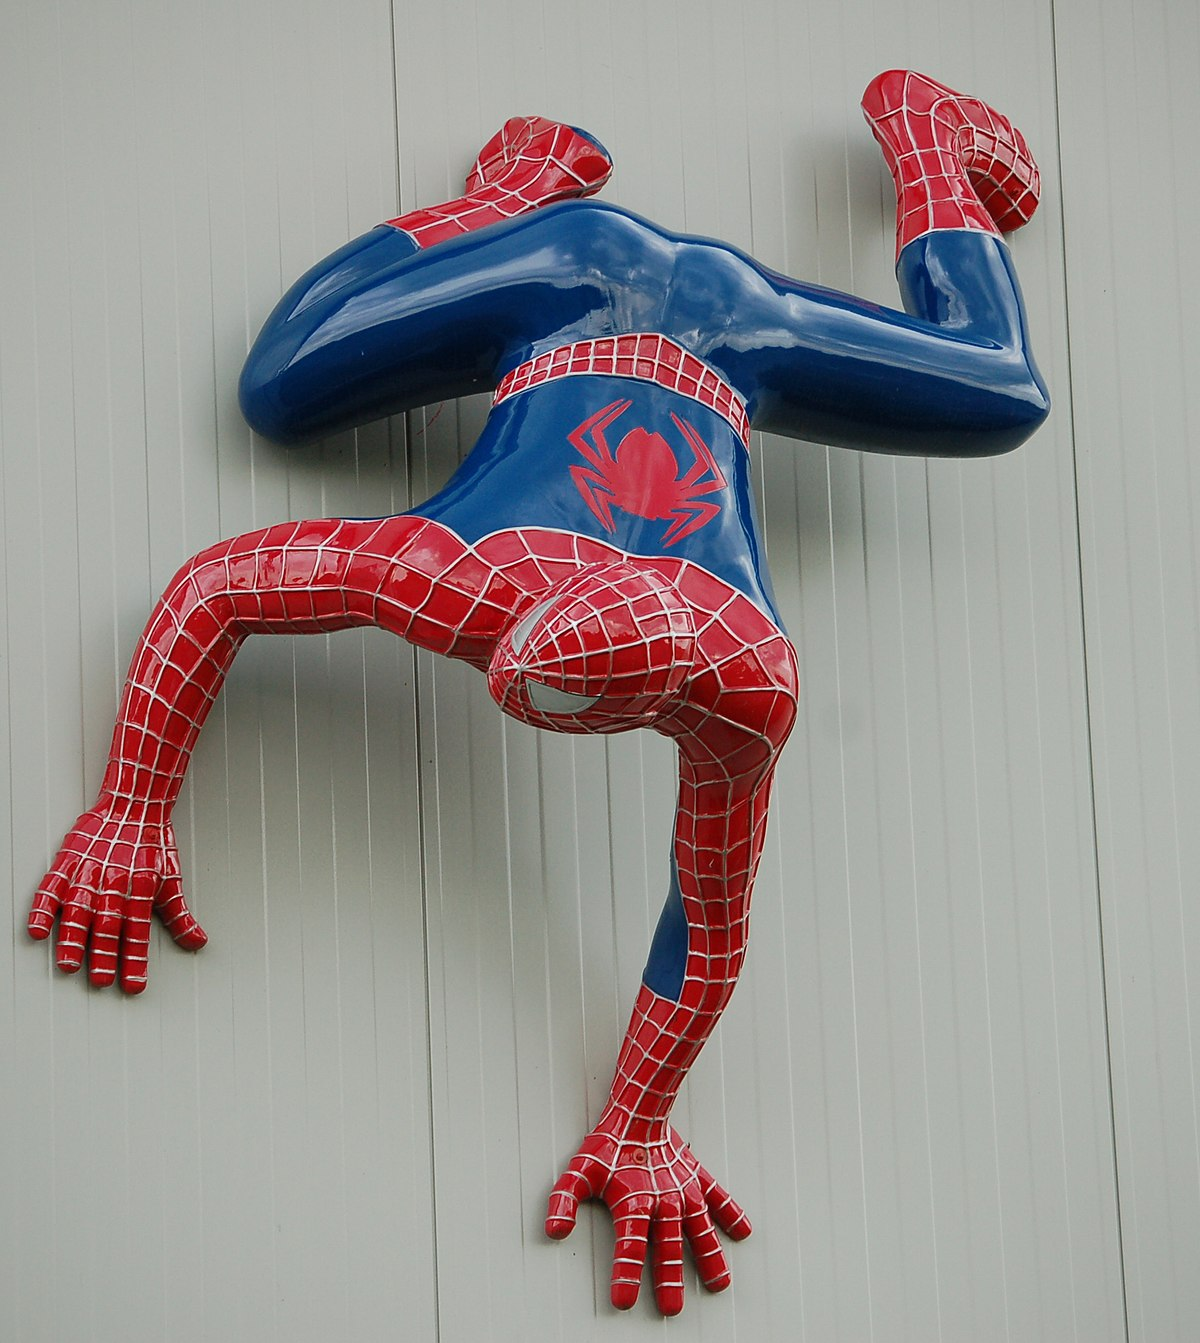 spider-man – wikipedia